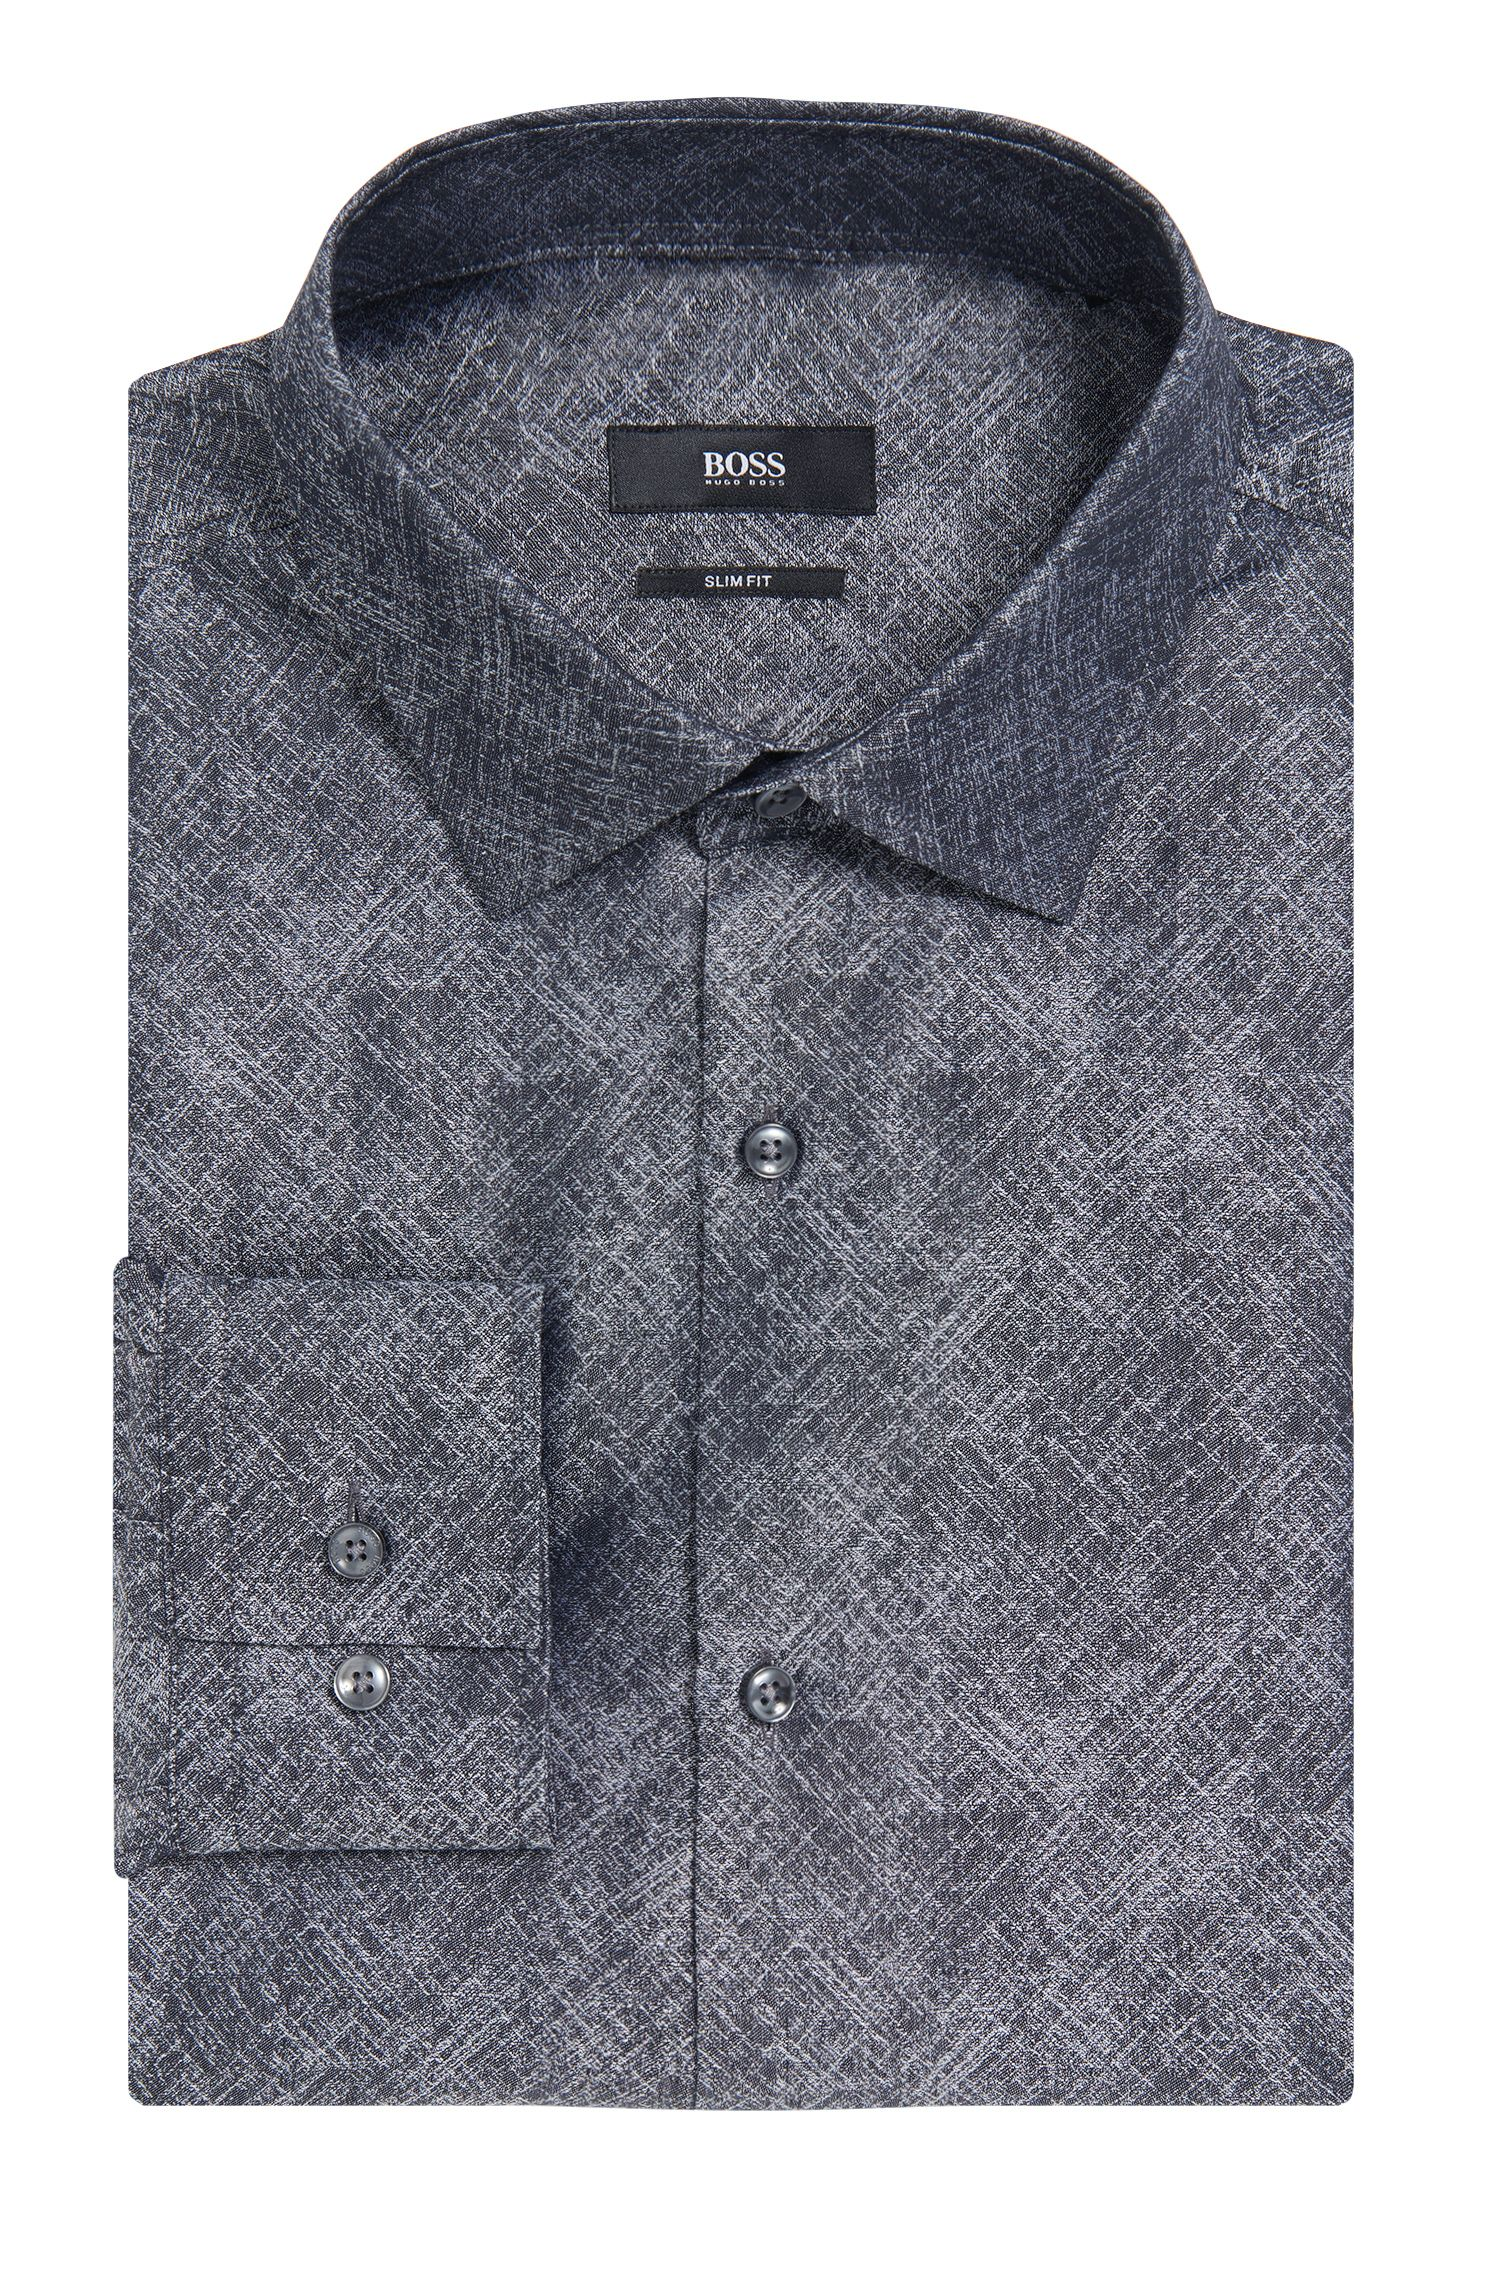 Crosshatch Italian Cotton Dress Shirt, Slim Fit | Jenno